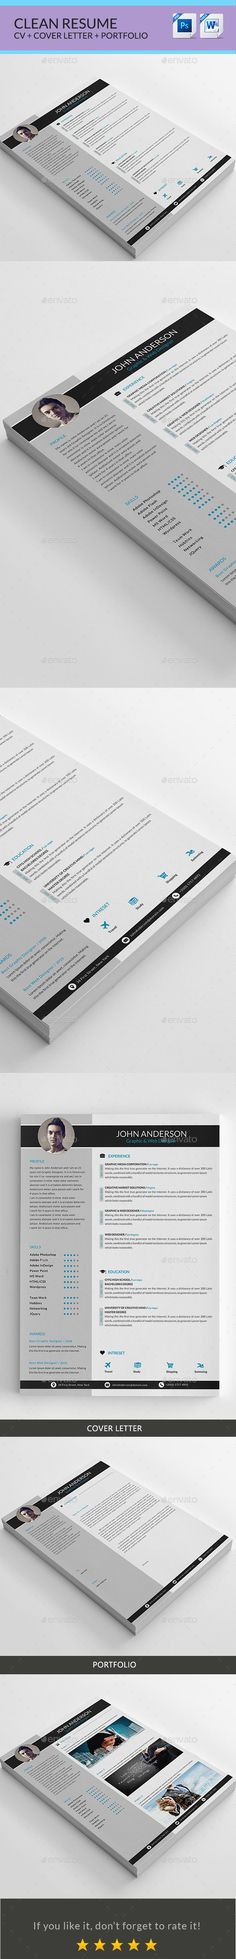 professional resume template curriculum vitae first job download samples free